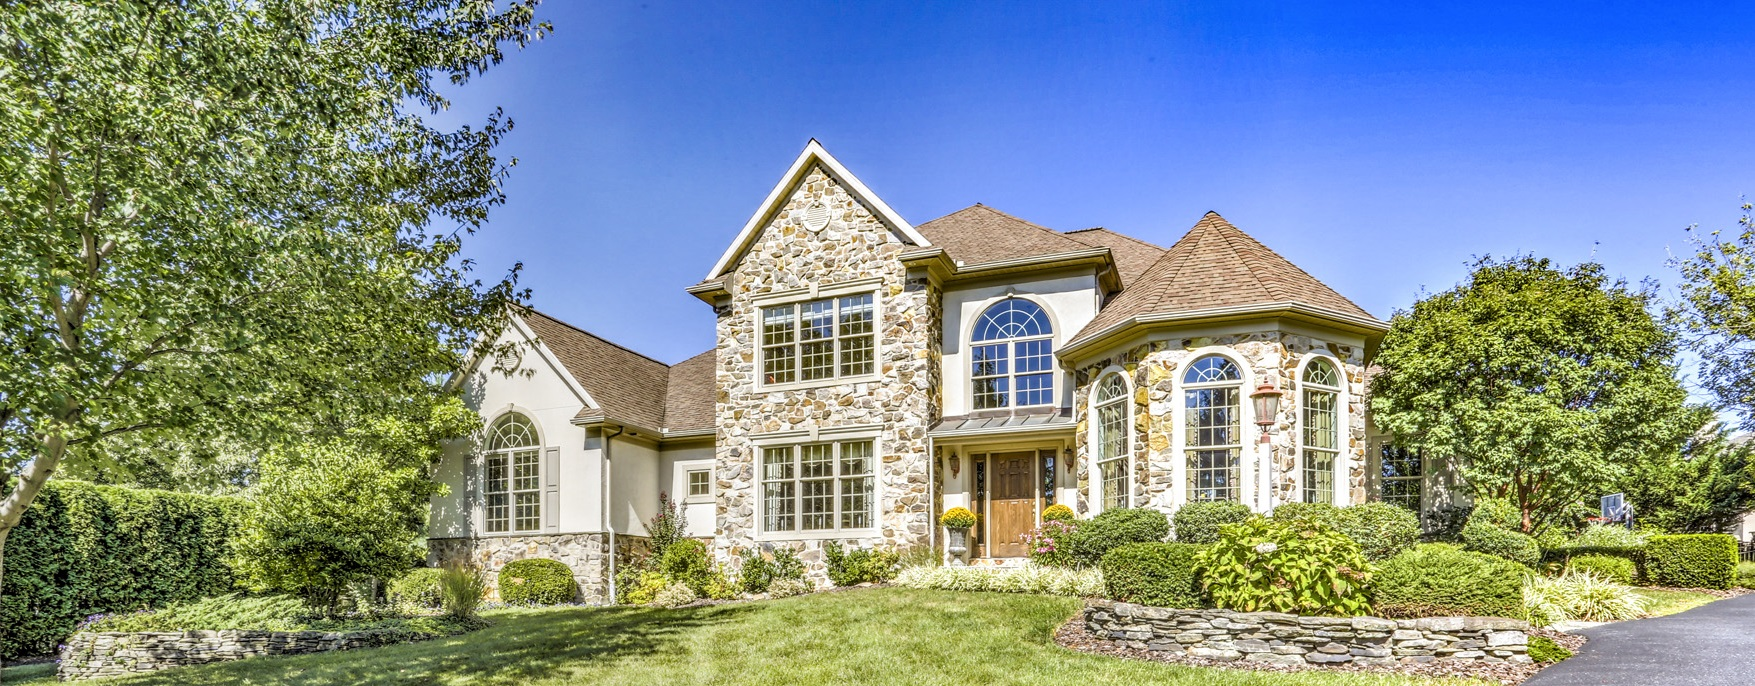 Single Family Home for Sale at 679 Goose Neck Drive Lititz, Pennsylvania 17543 United States